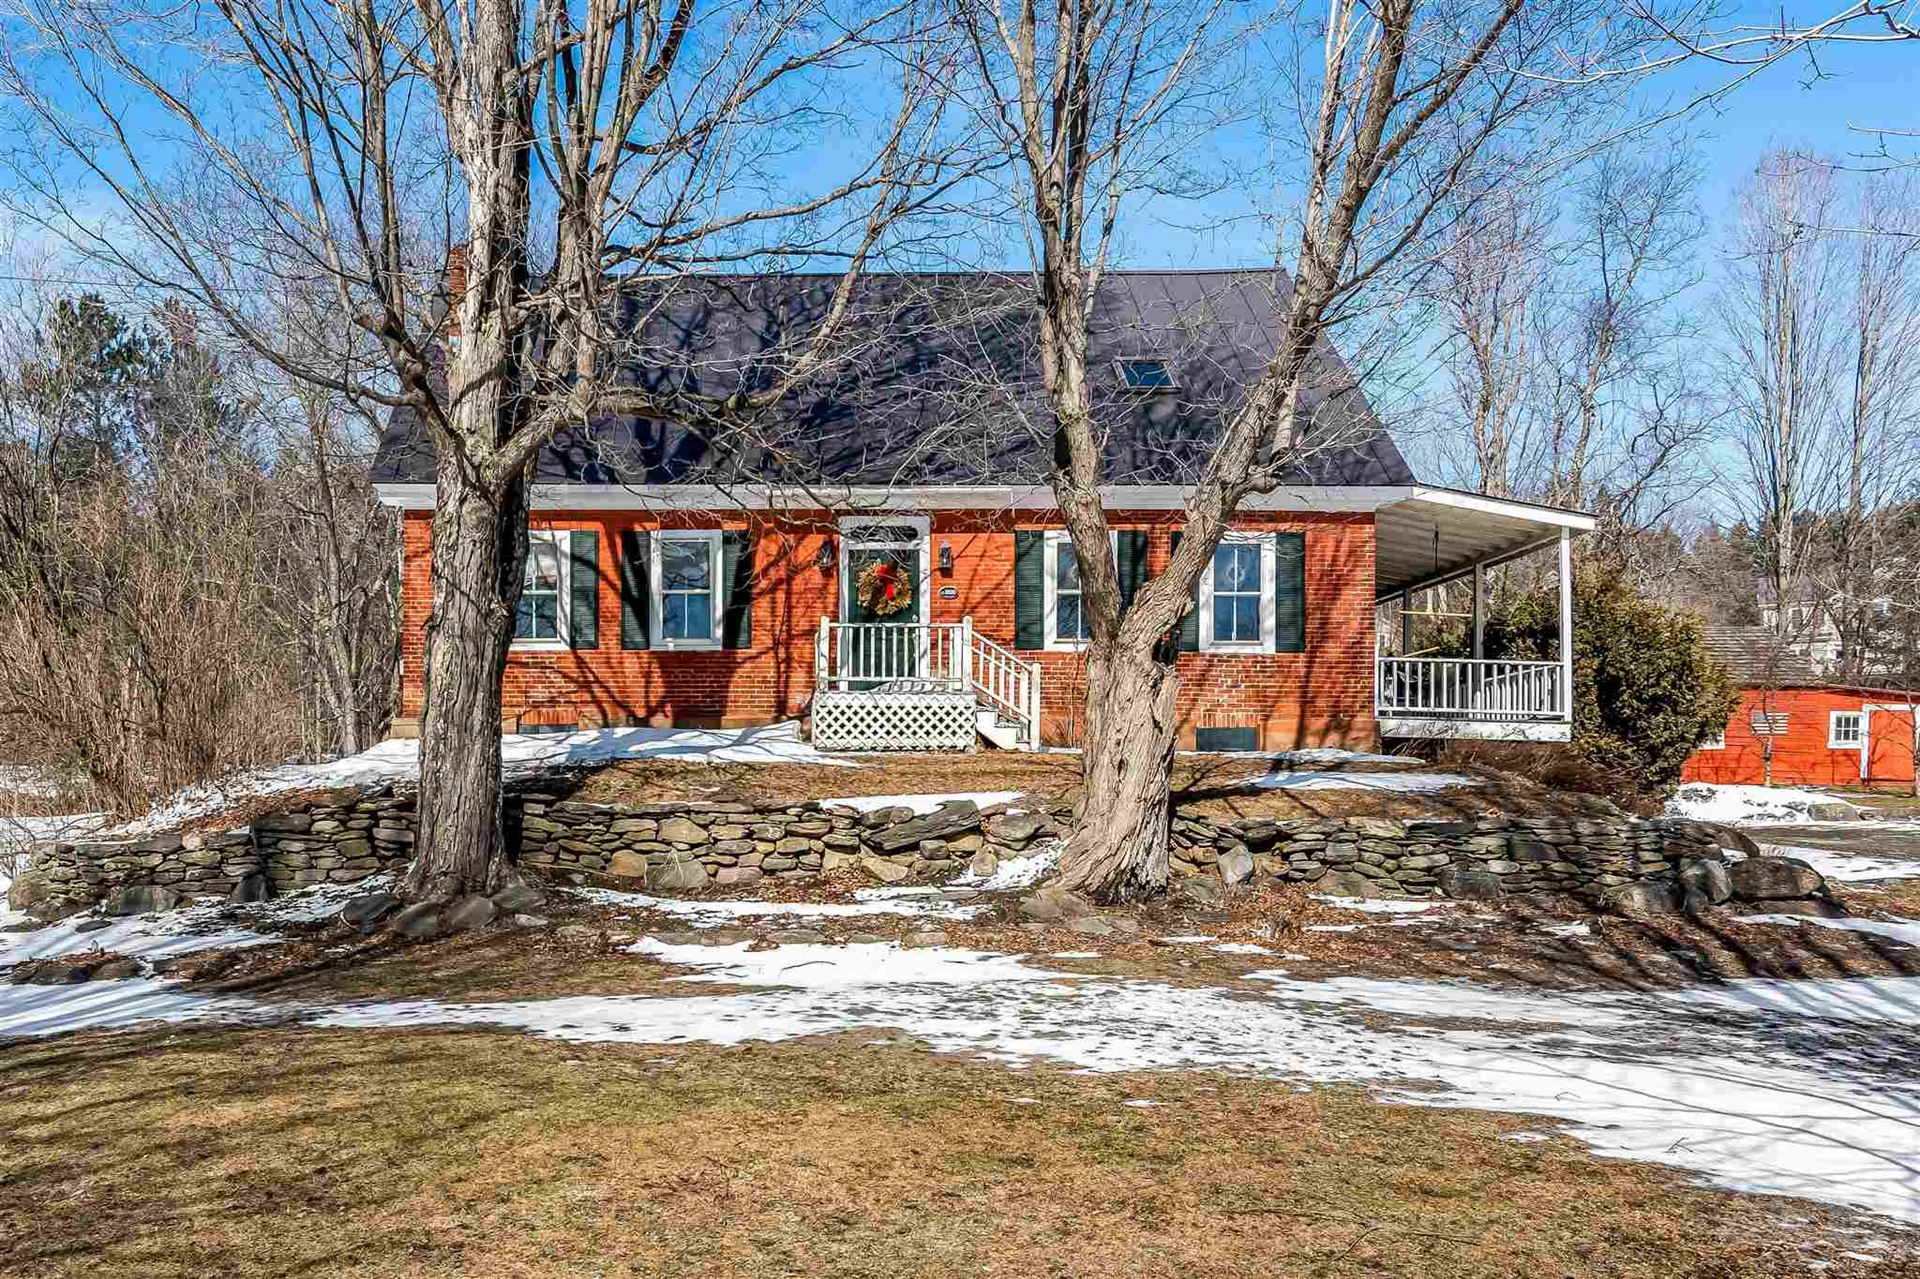 Photo of 3376 Mountain Road, Stowe, VT 05672 (MLS # 4853370)